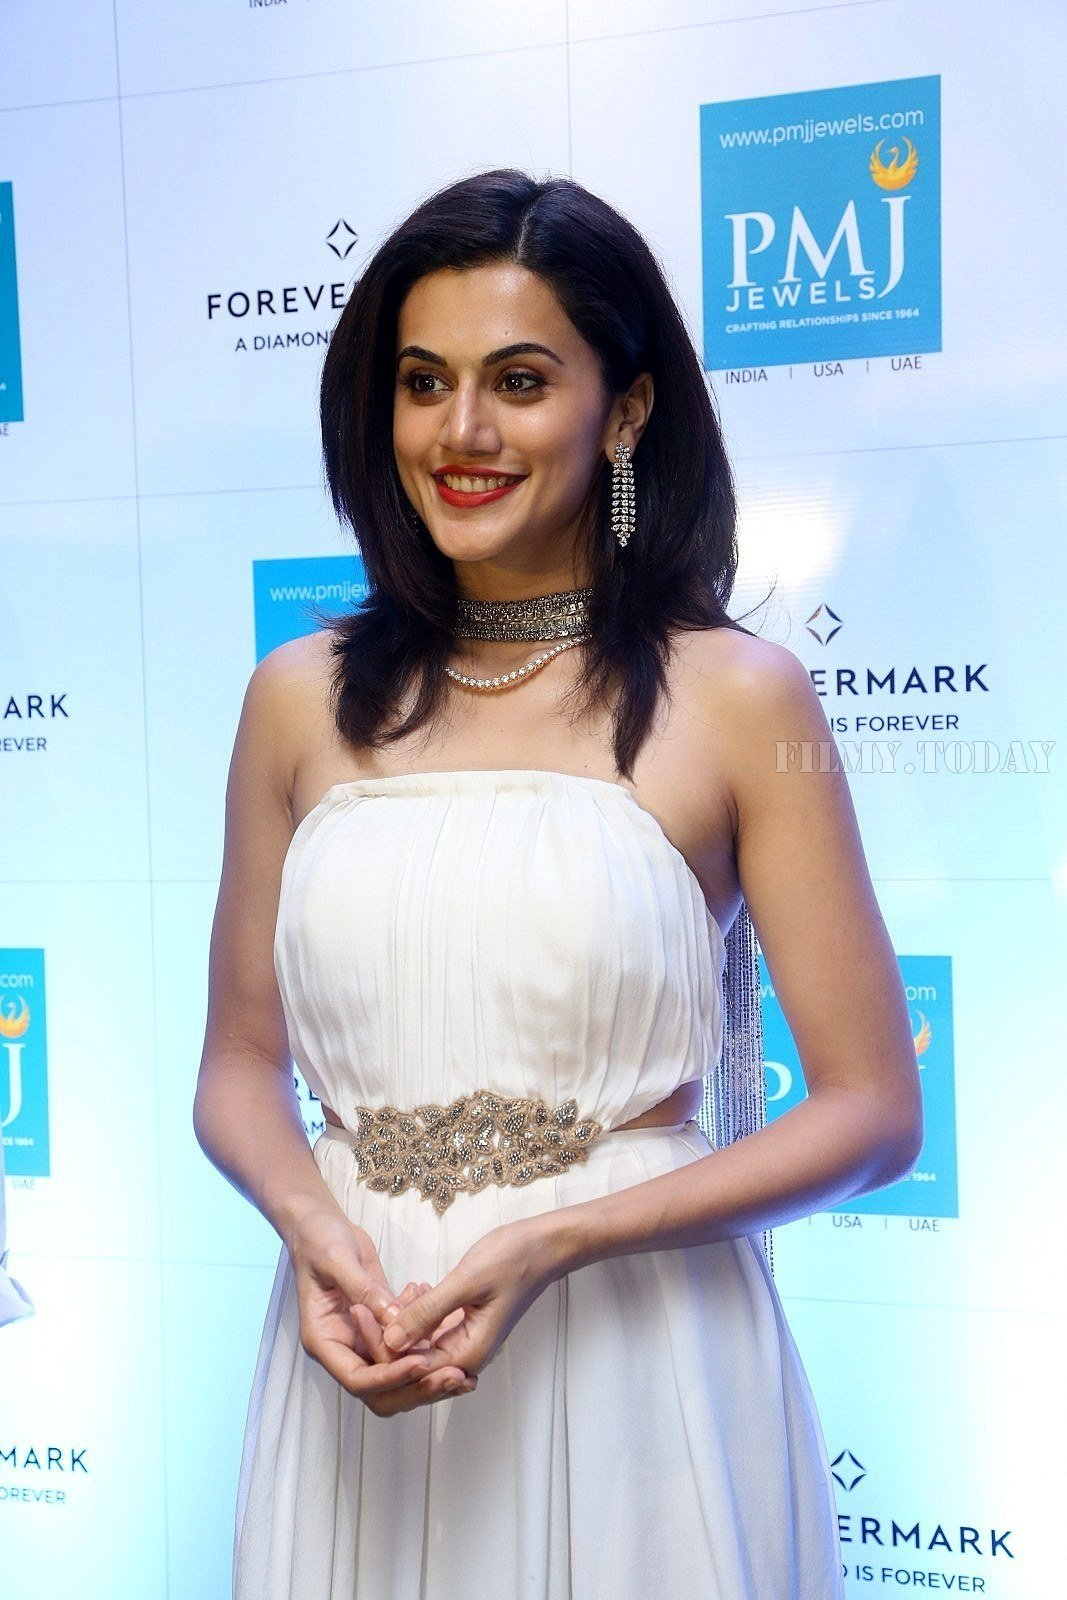 Taapsee Pannu launches Forevermark diamond collection in PMJ Jewels